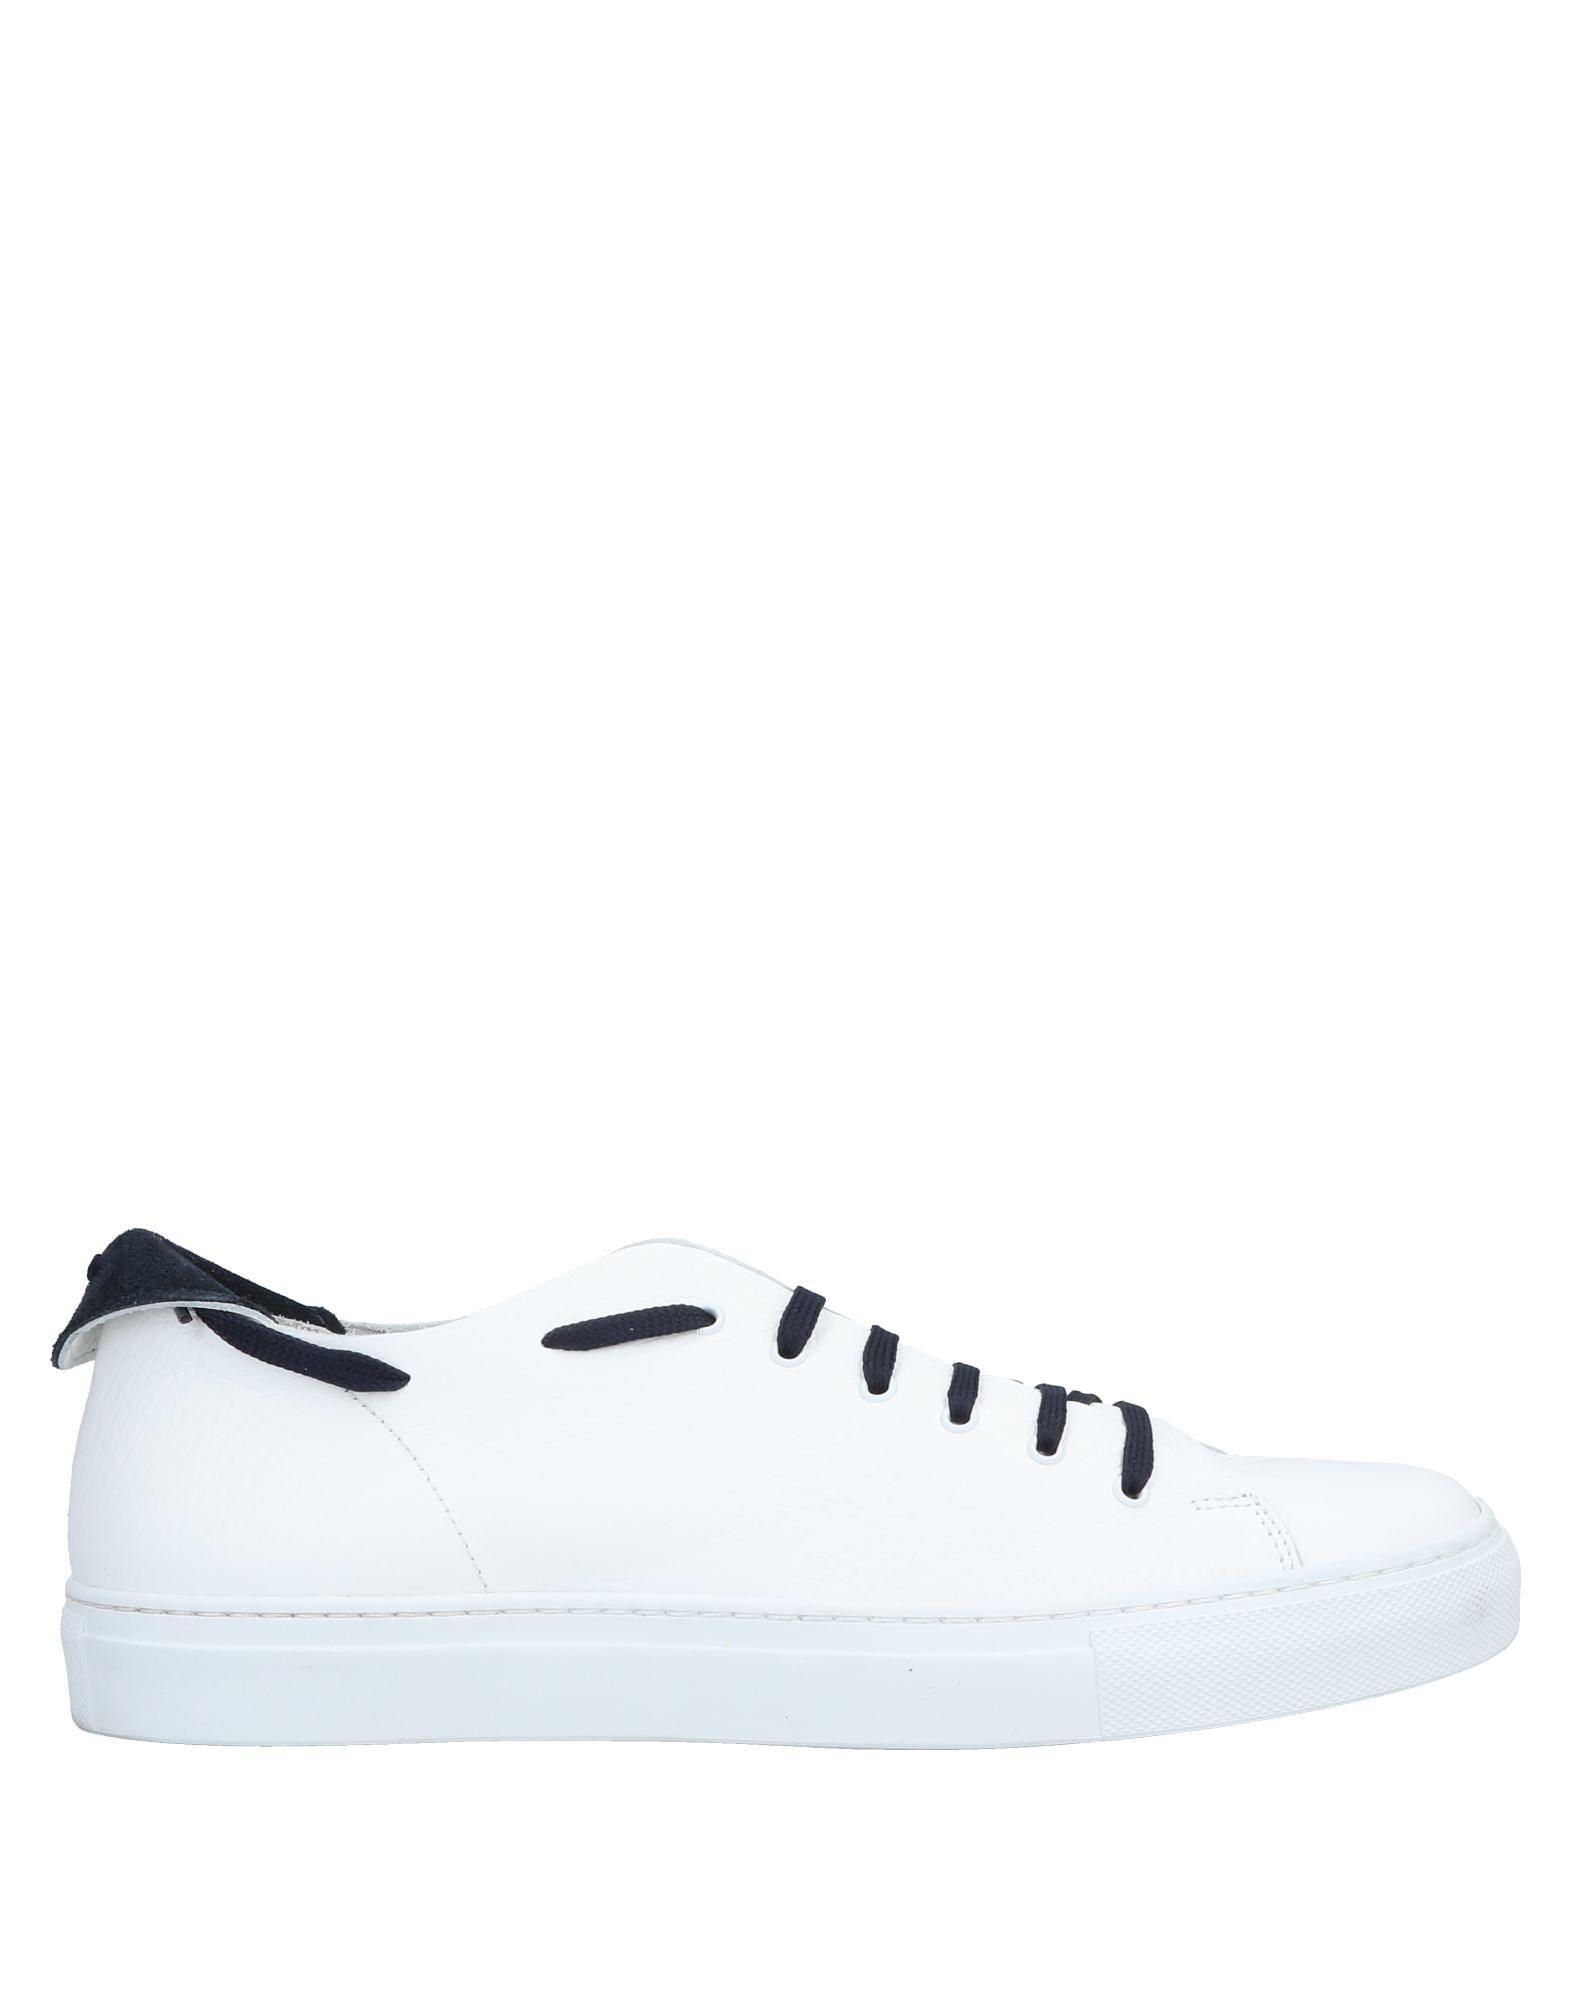 Passion Blanche Sneakers - Men on Passion Blanche Sneakers online on Men  Australia - 11576616FD 903f52